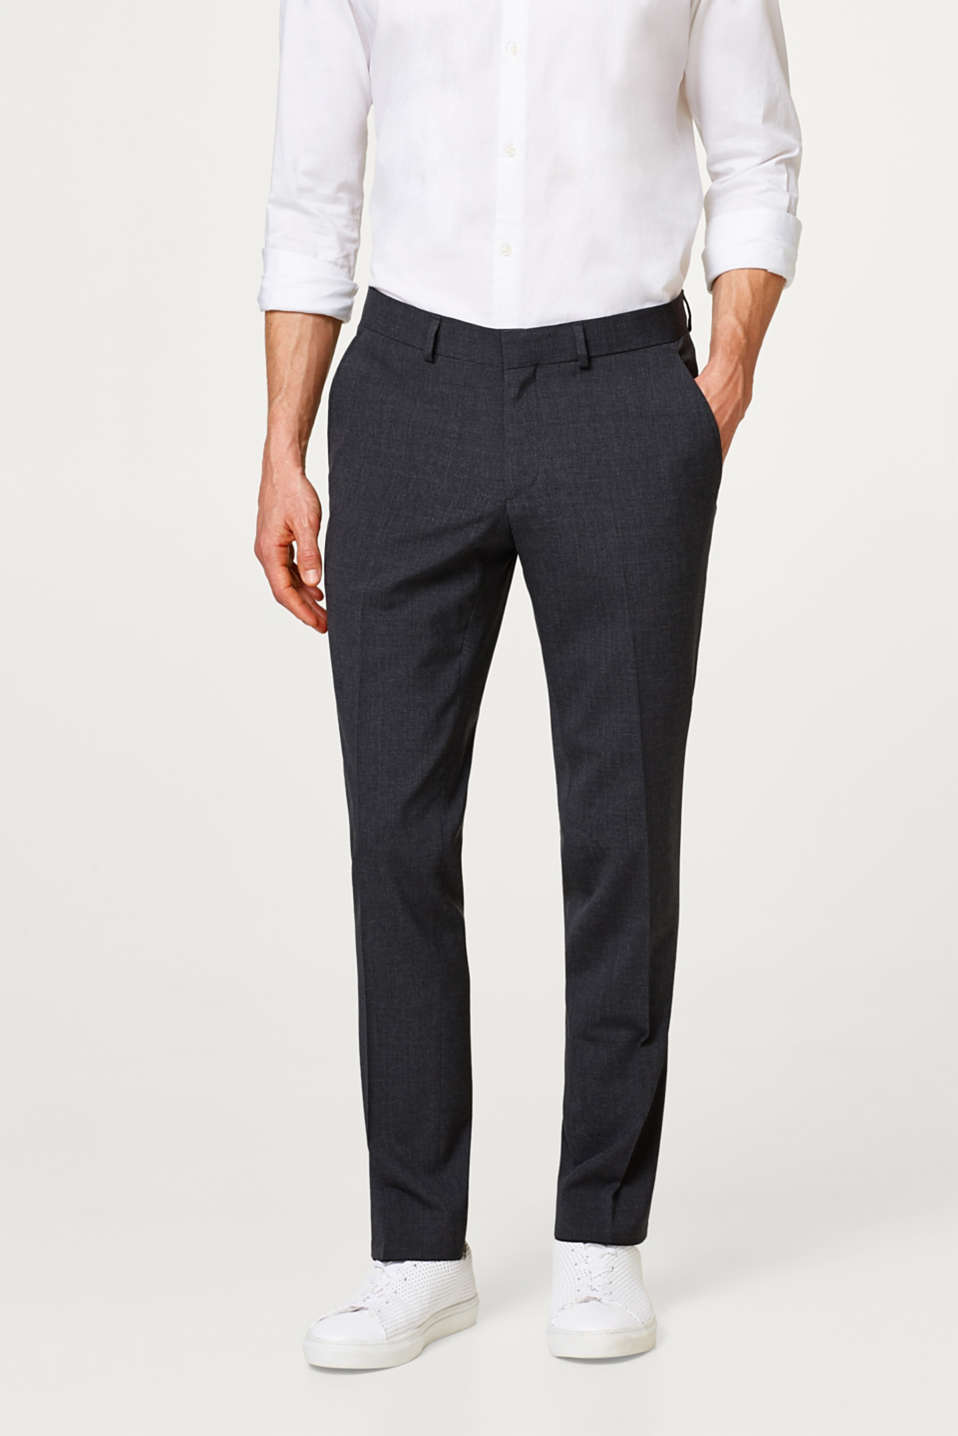 Esprit - Slim fitting suit trousers with new wool